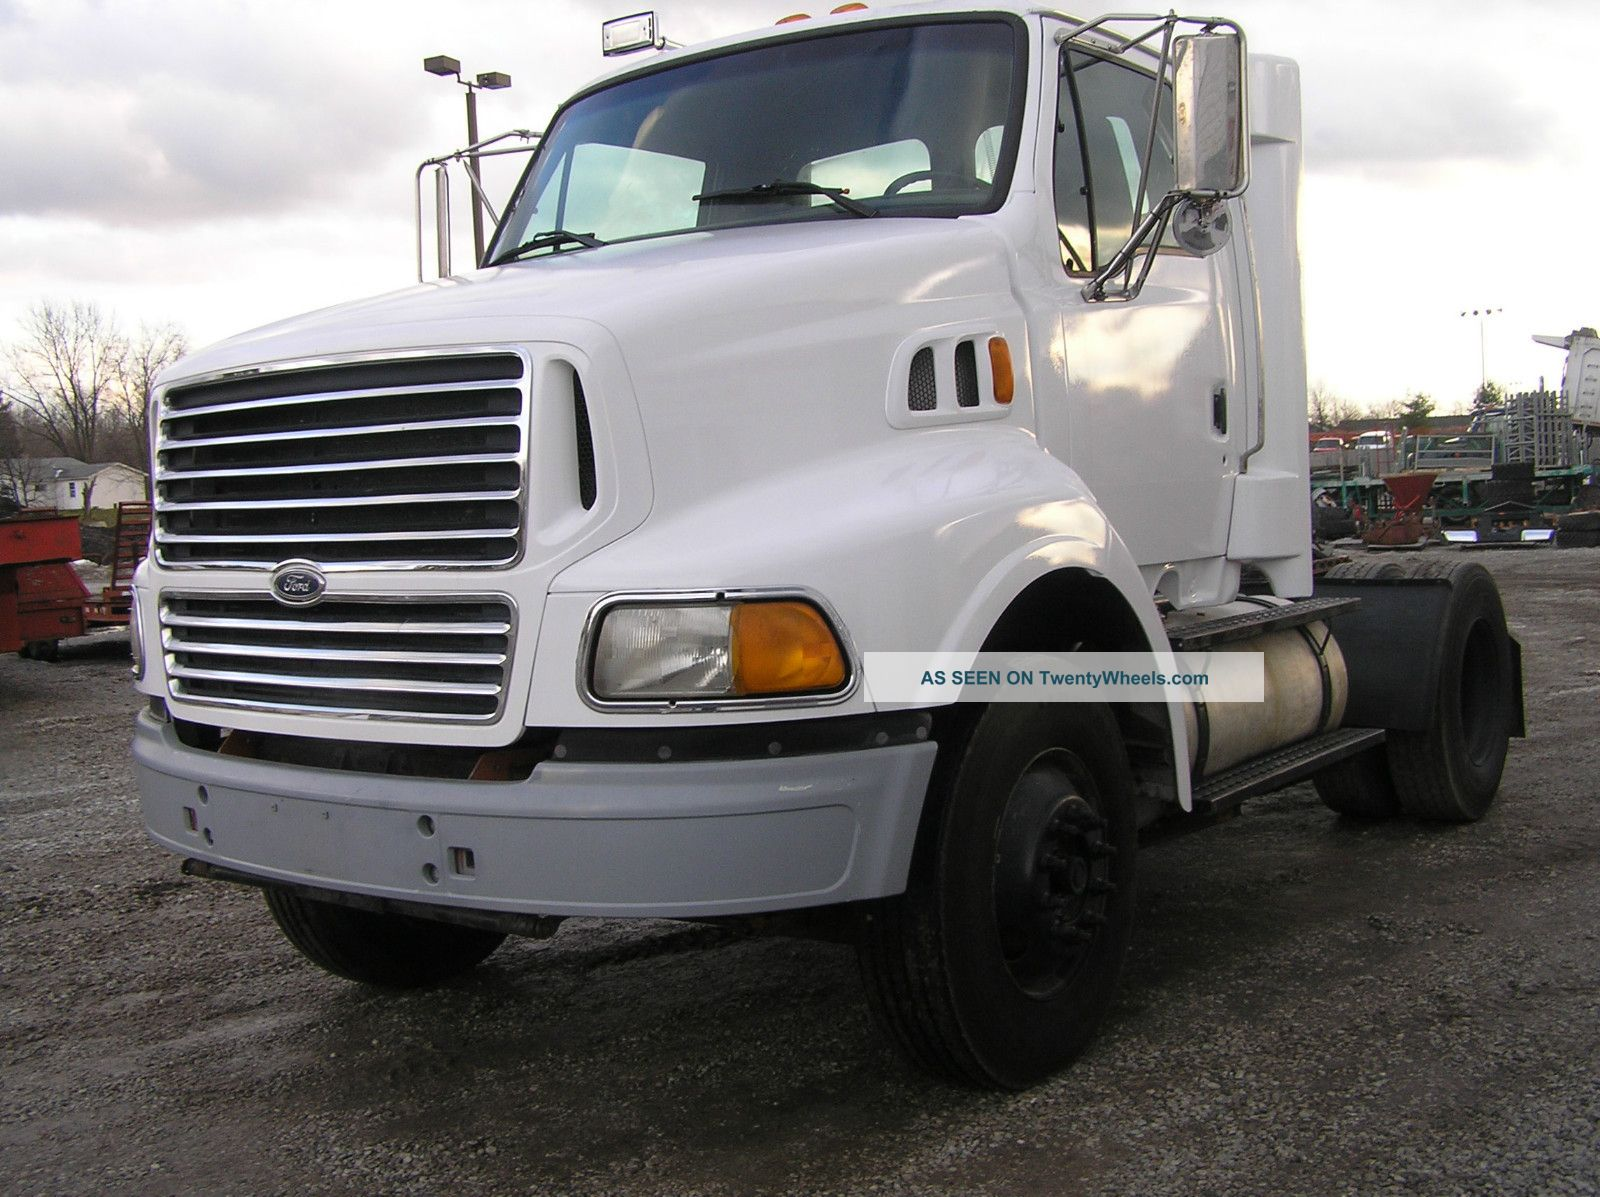 Ford a9513 photo - 1